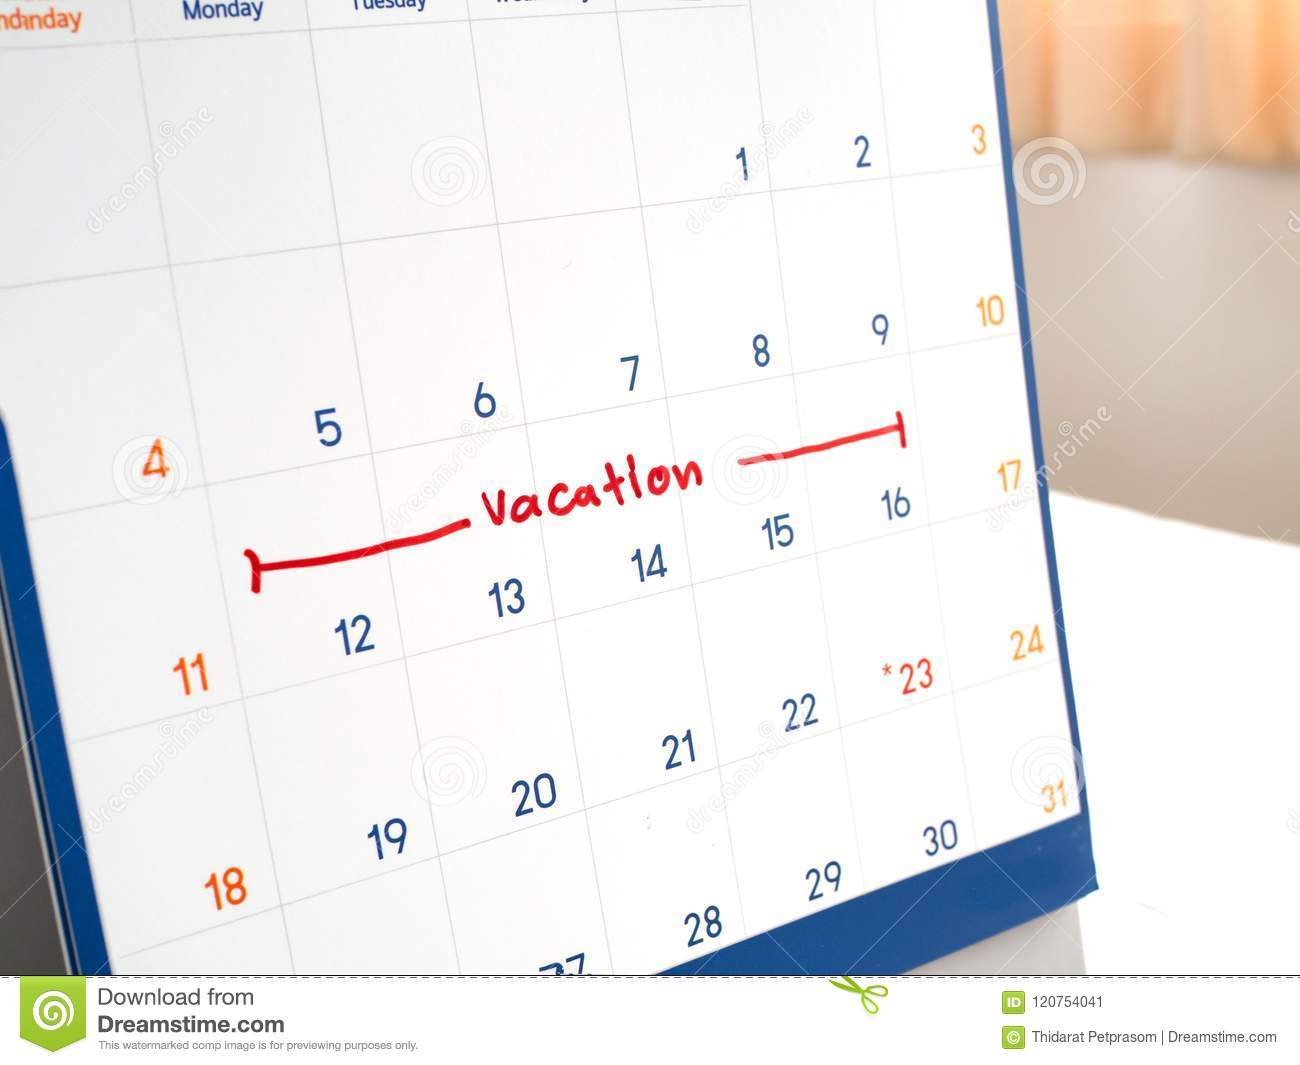 Red vacation write on white calendar marked for remember and target time to long vacation and relax time